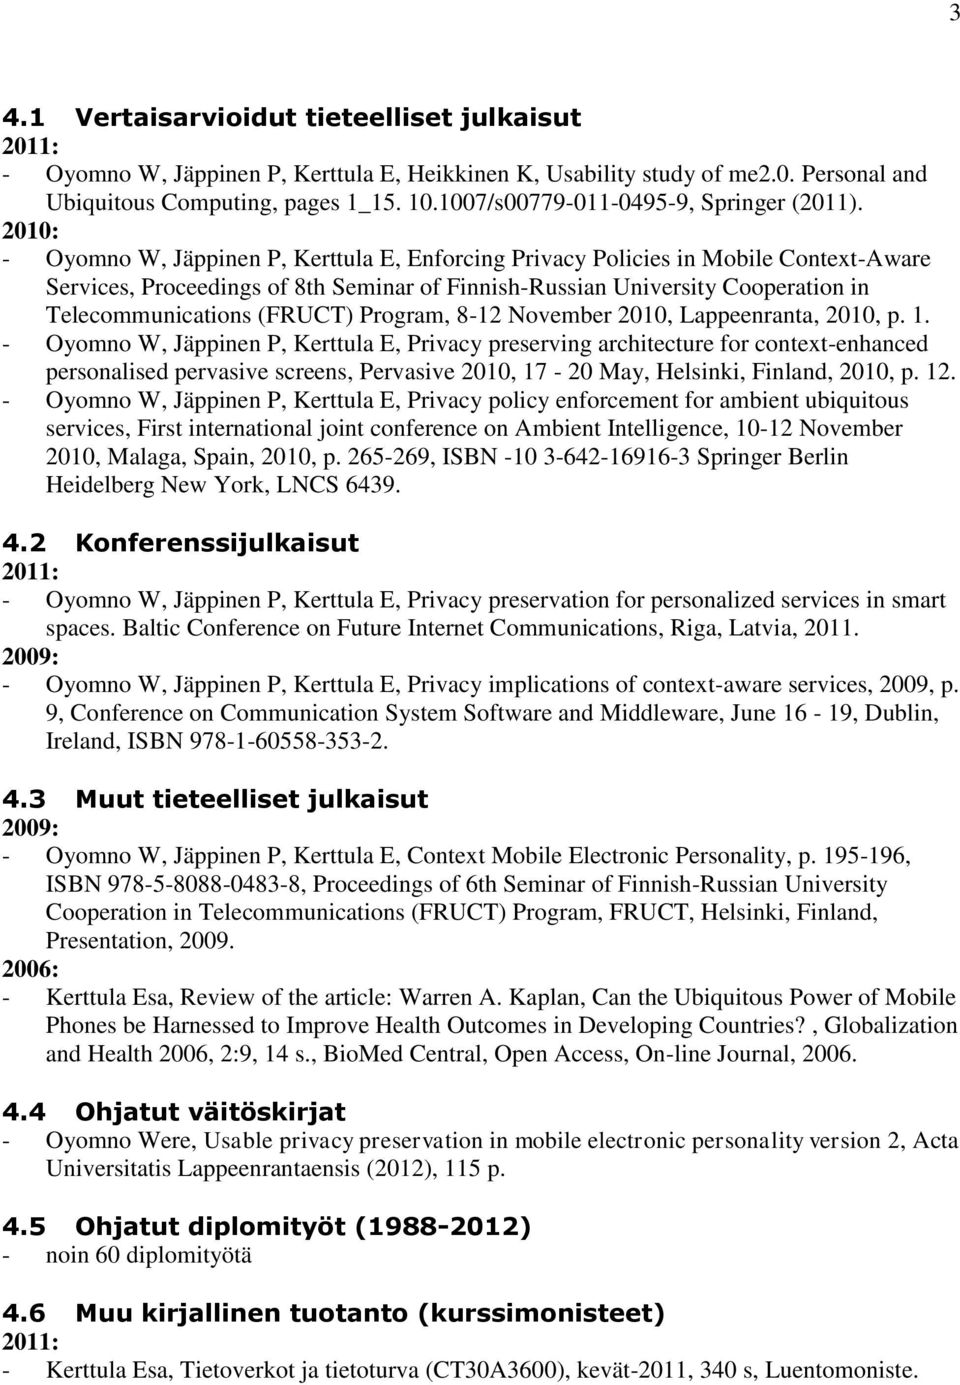 2010: - Oyomno W, Jäppinen P, Kerttula E, Enforcing Privacy Policies in Mobile Context-Aware Services, Proceedings of 8th Seminar of Finnish-Russian University Cooperation in Telecommunications